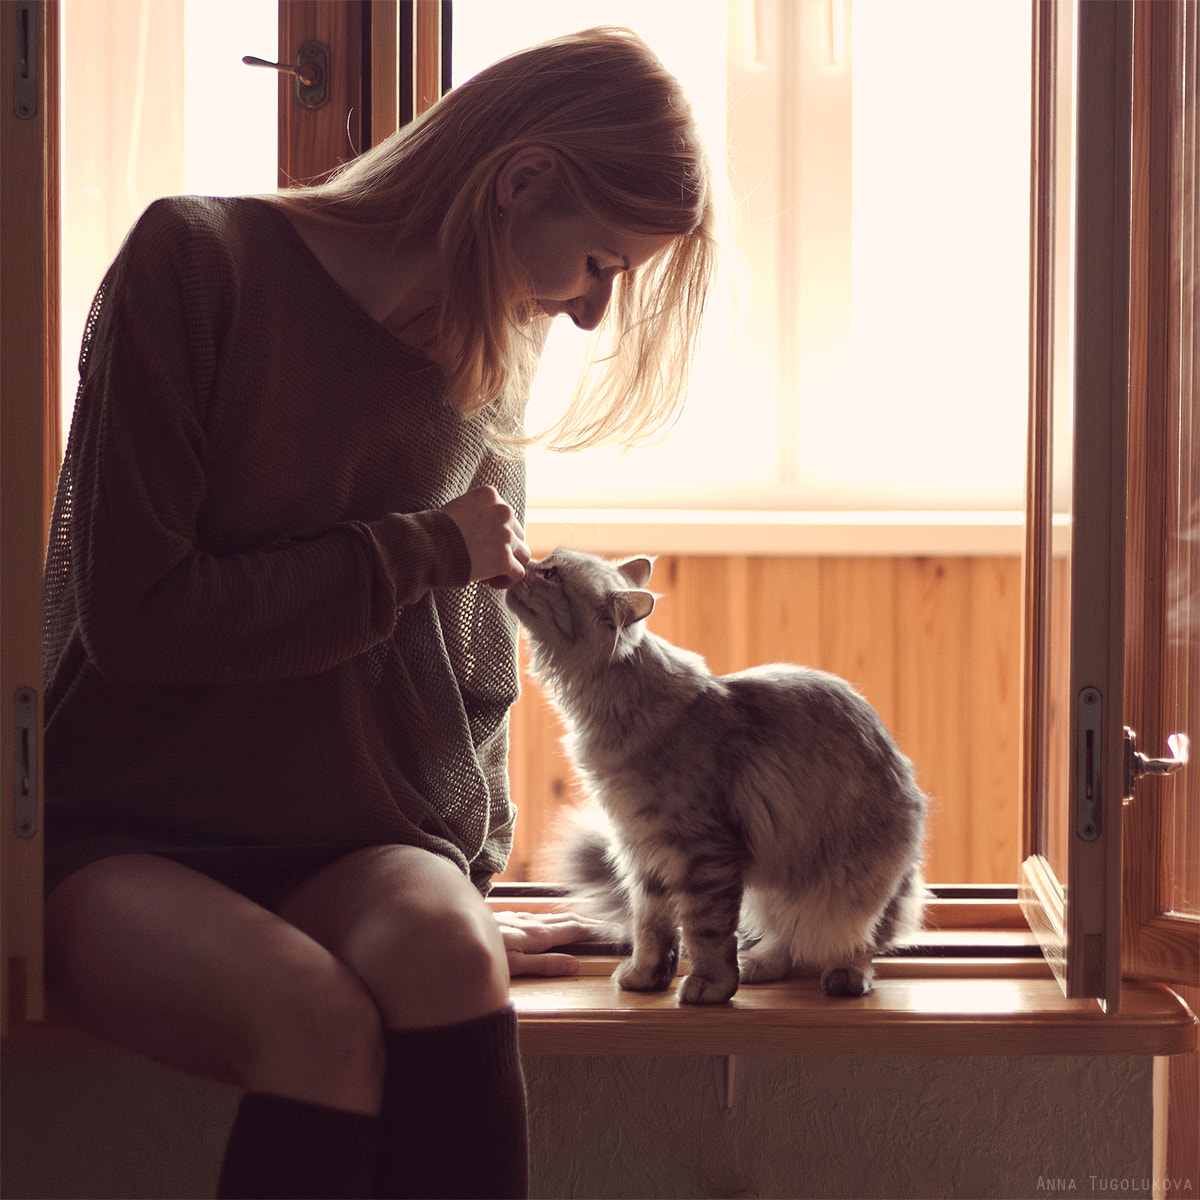 Photograph She and cat by Anna Tugolukova on 500px